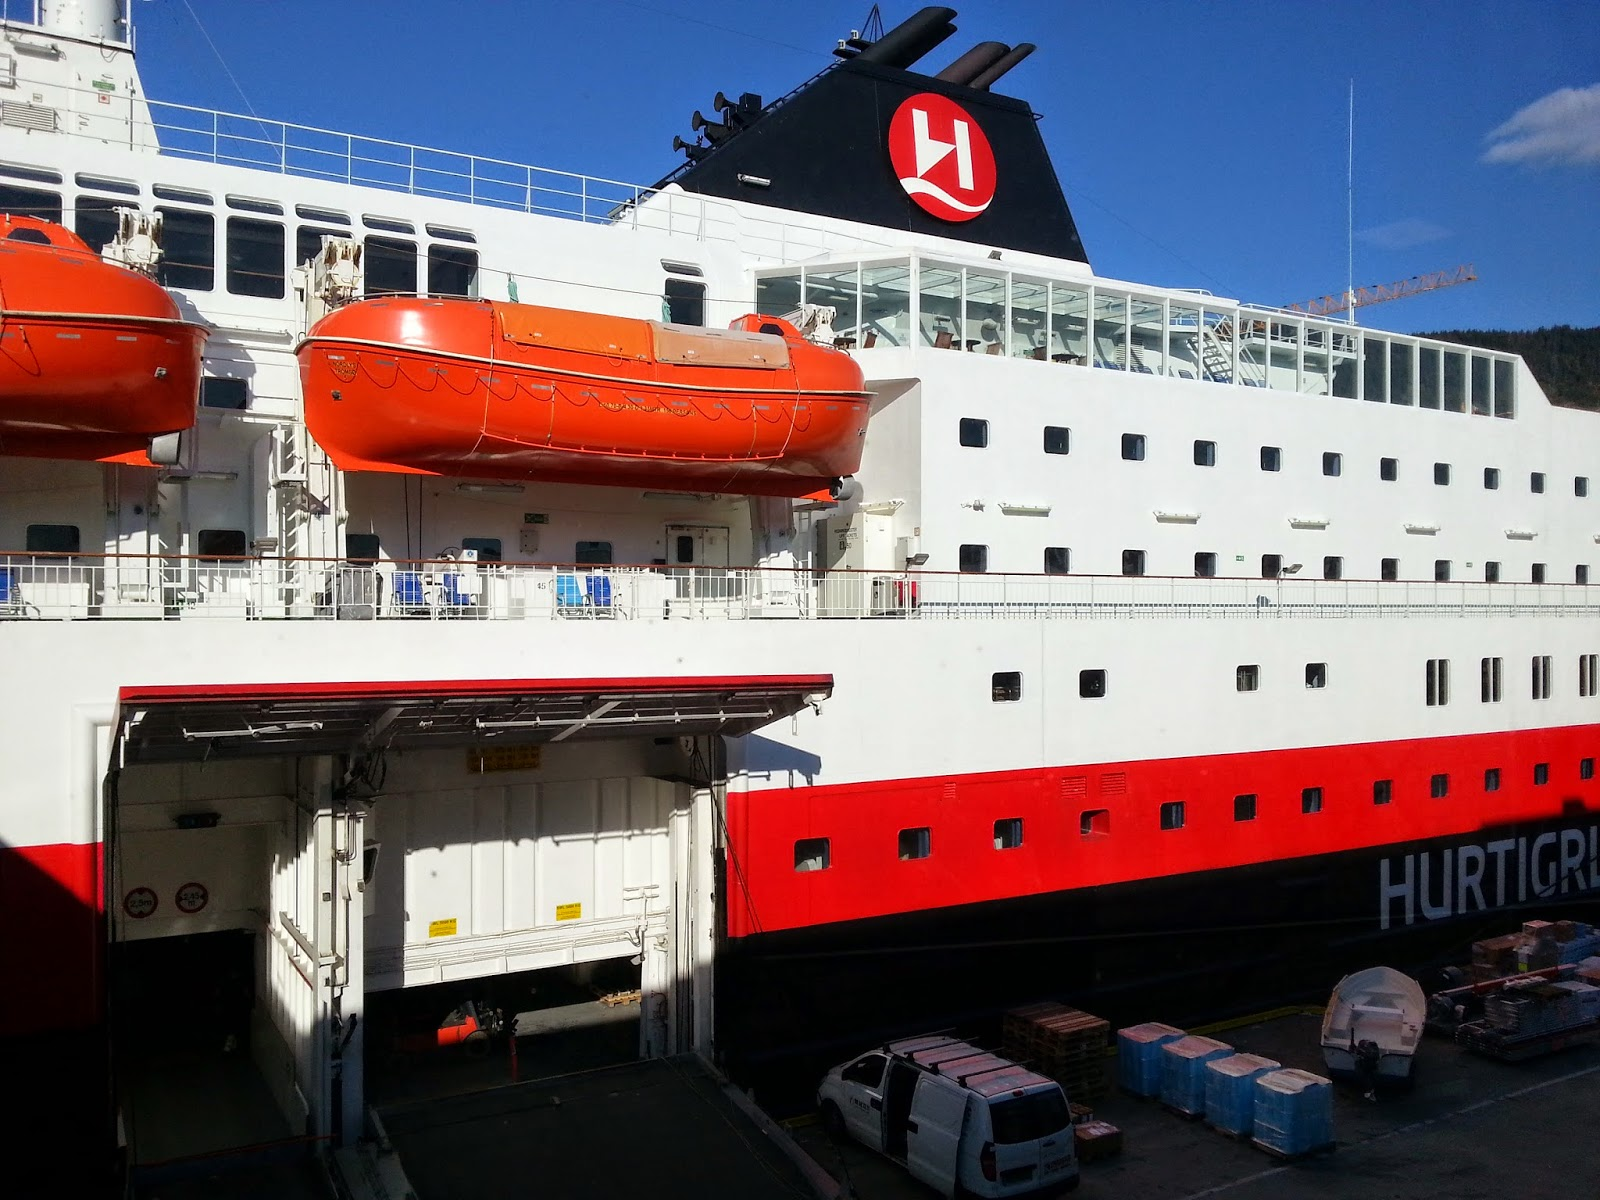 Hurtigruten MS Nordlys in Bergen